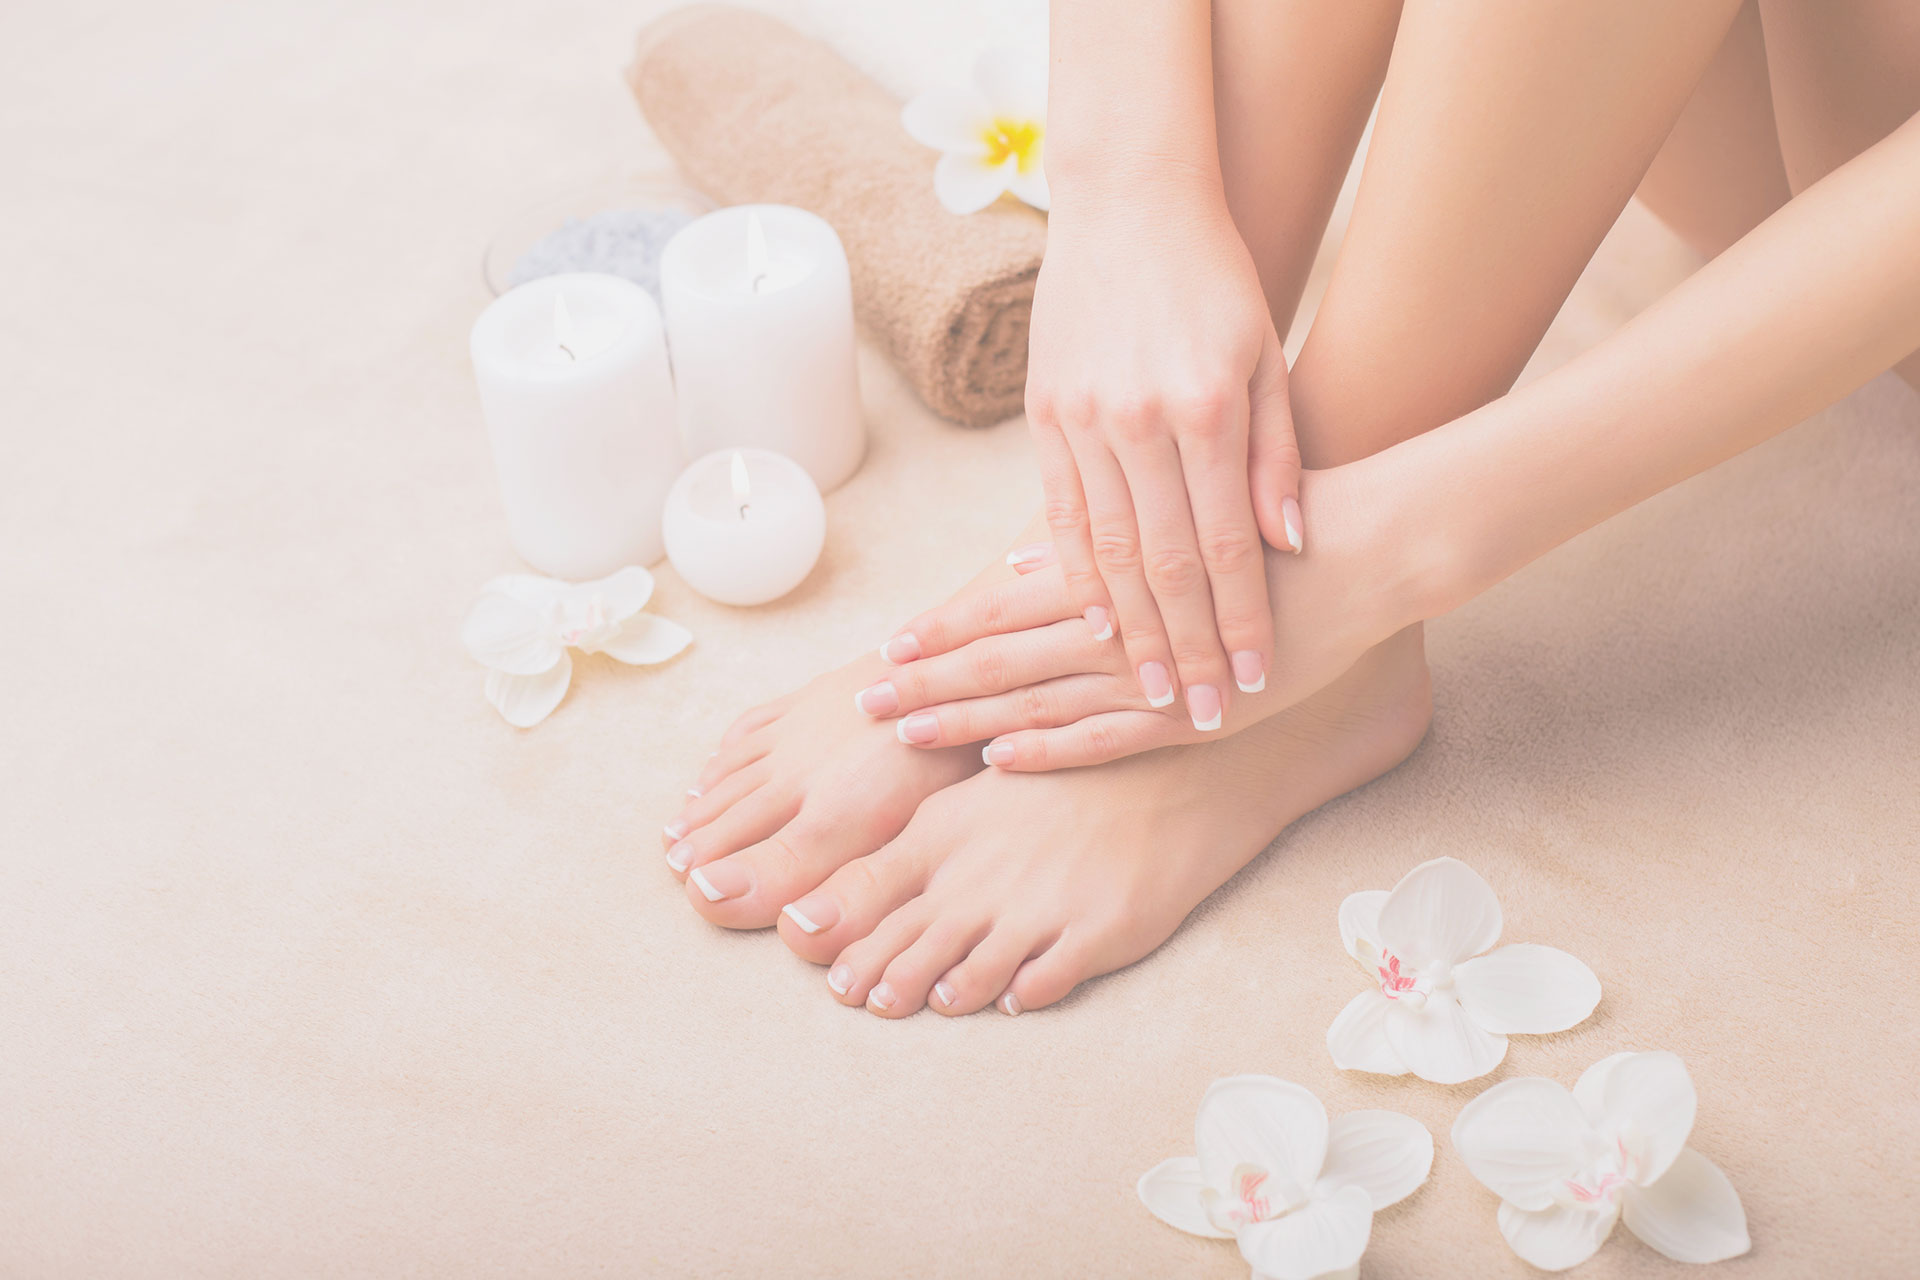 manicure and pedicure feet & hands with flowers & candles